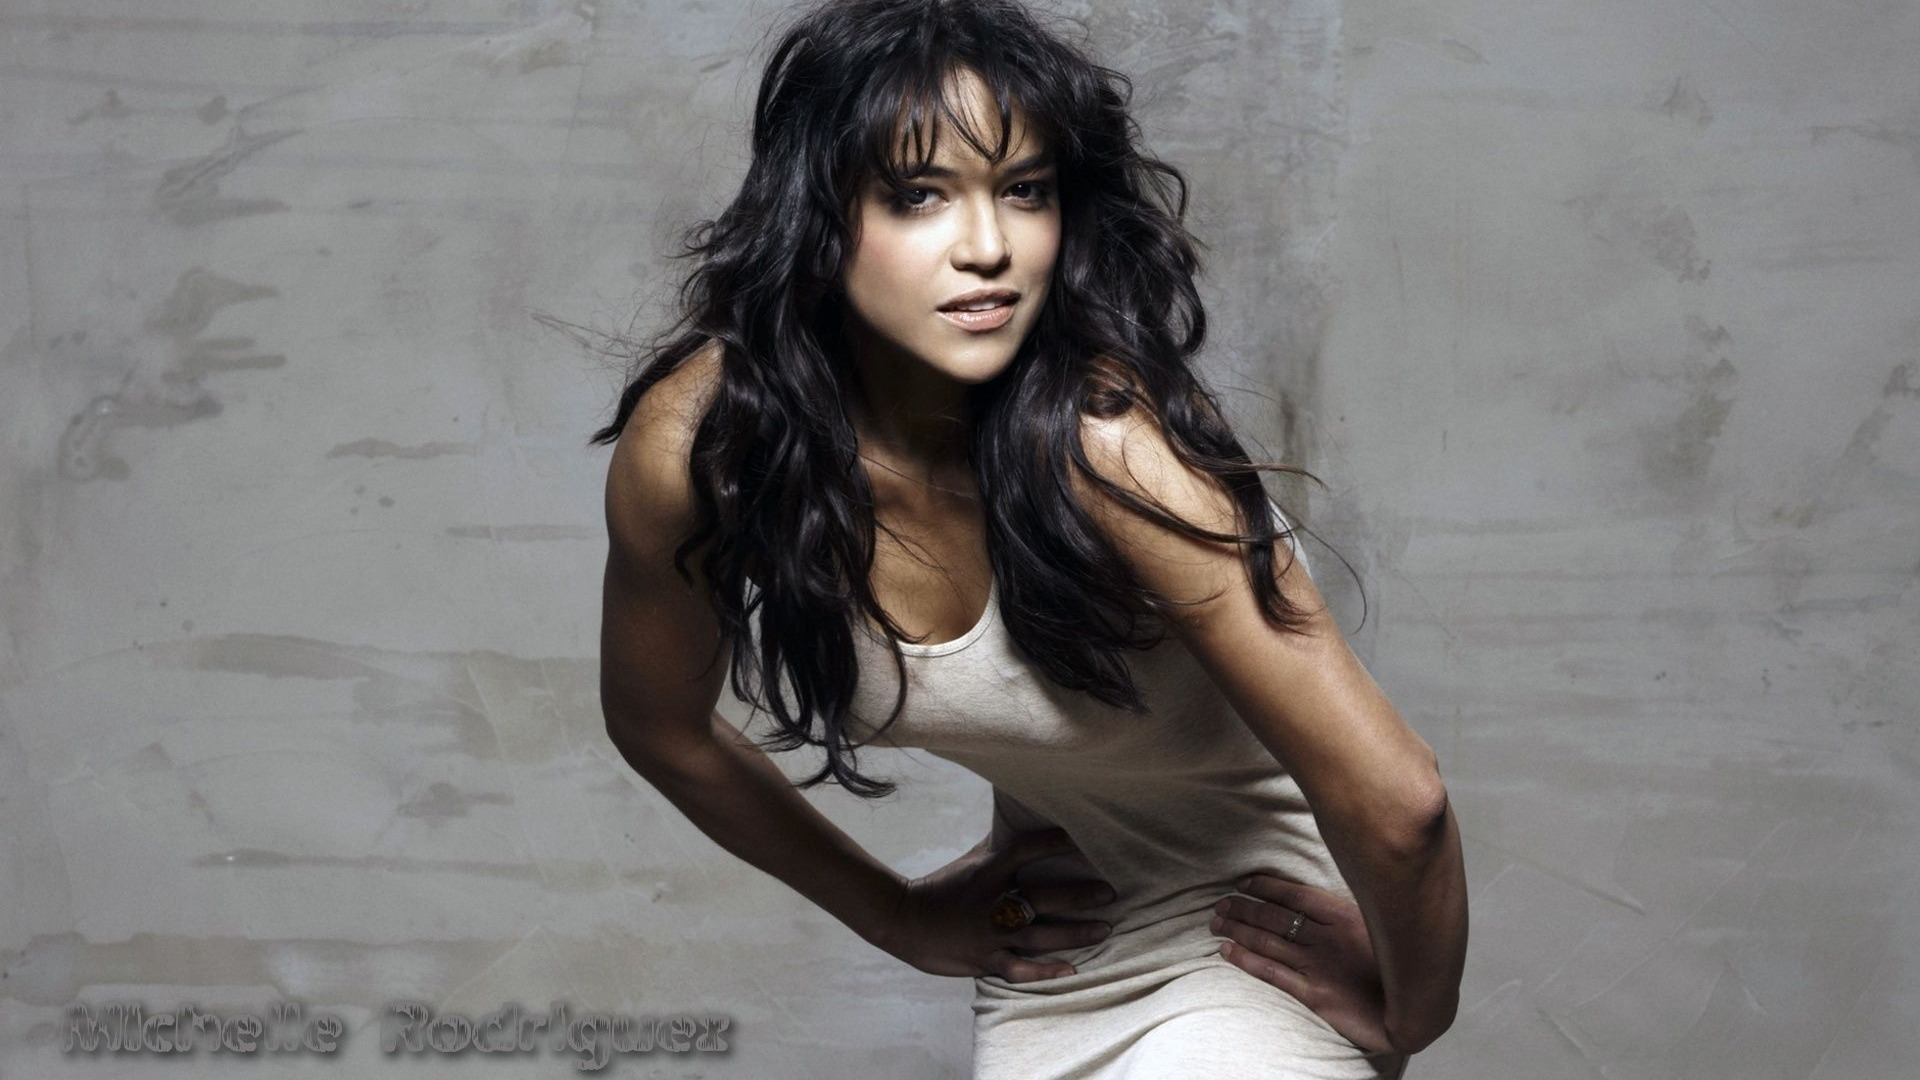 1920x1080 - Michelle Rodriguez Wallpapers 15